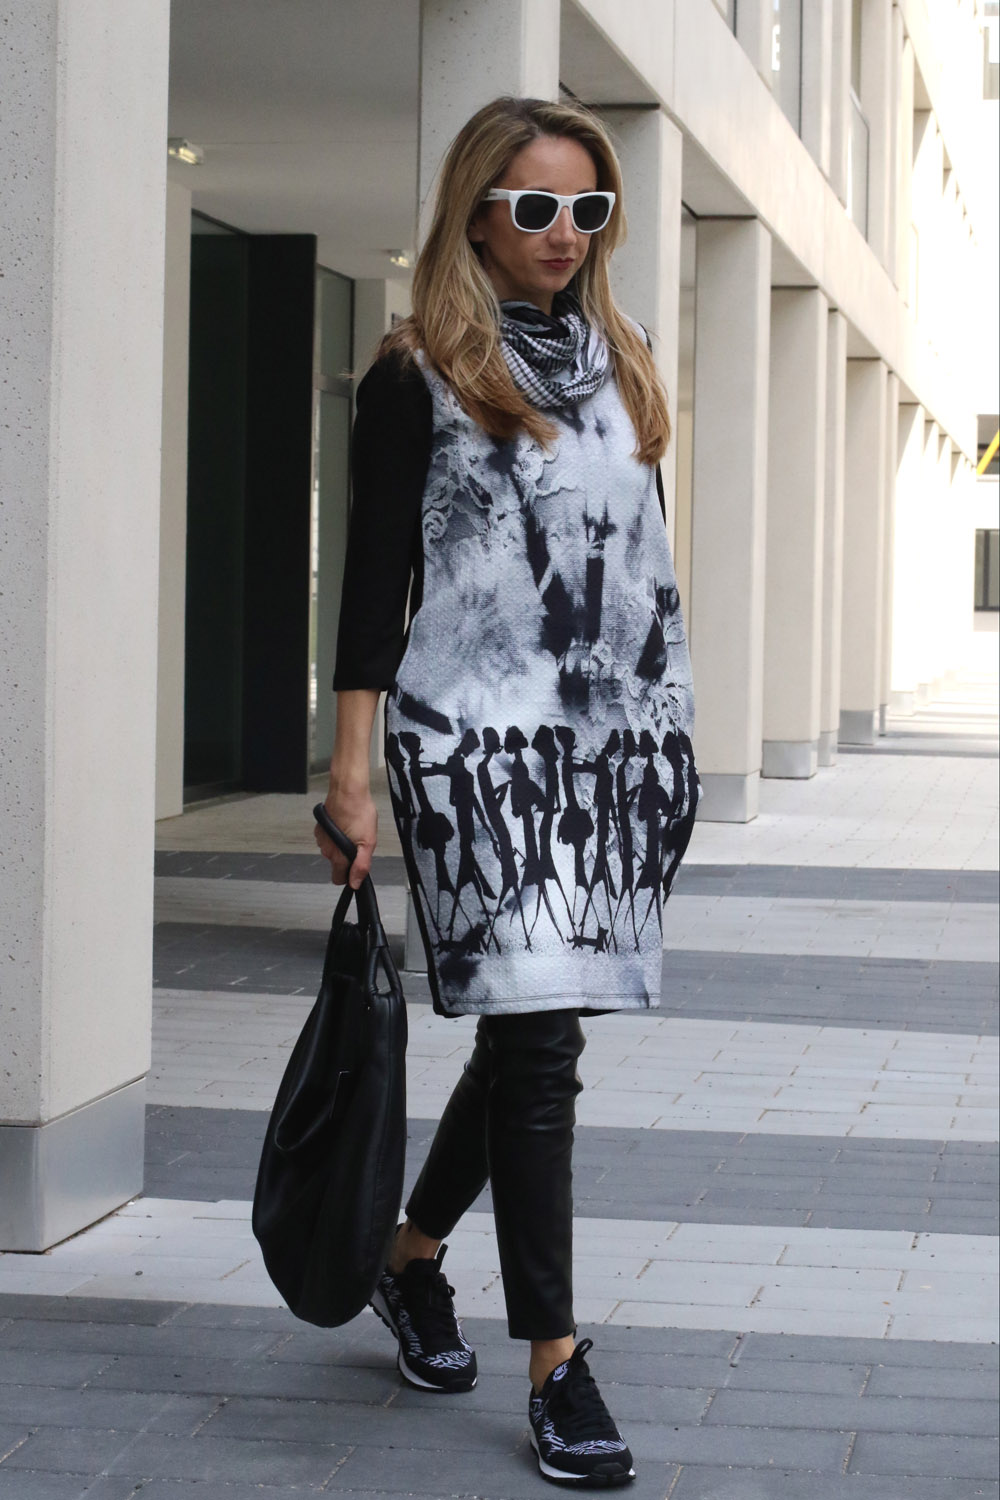 colourclub-fashionblog-outfit-dress-over-pants-black-and-white2